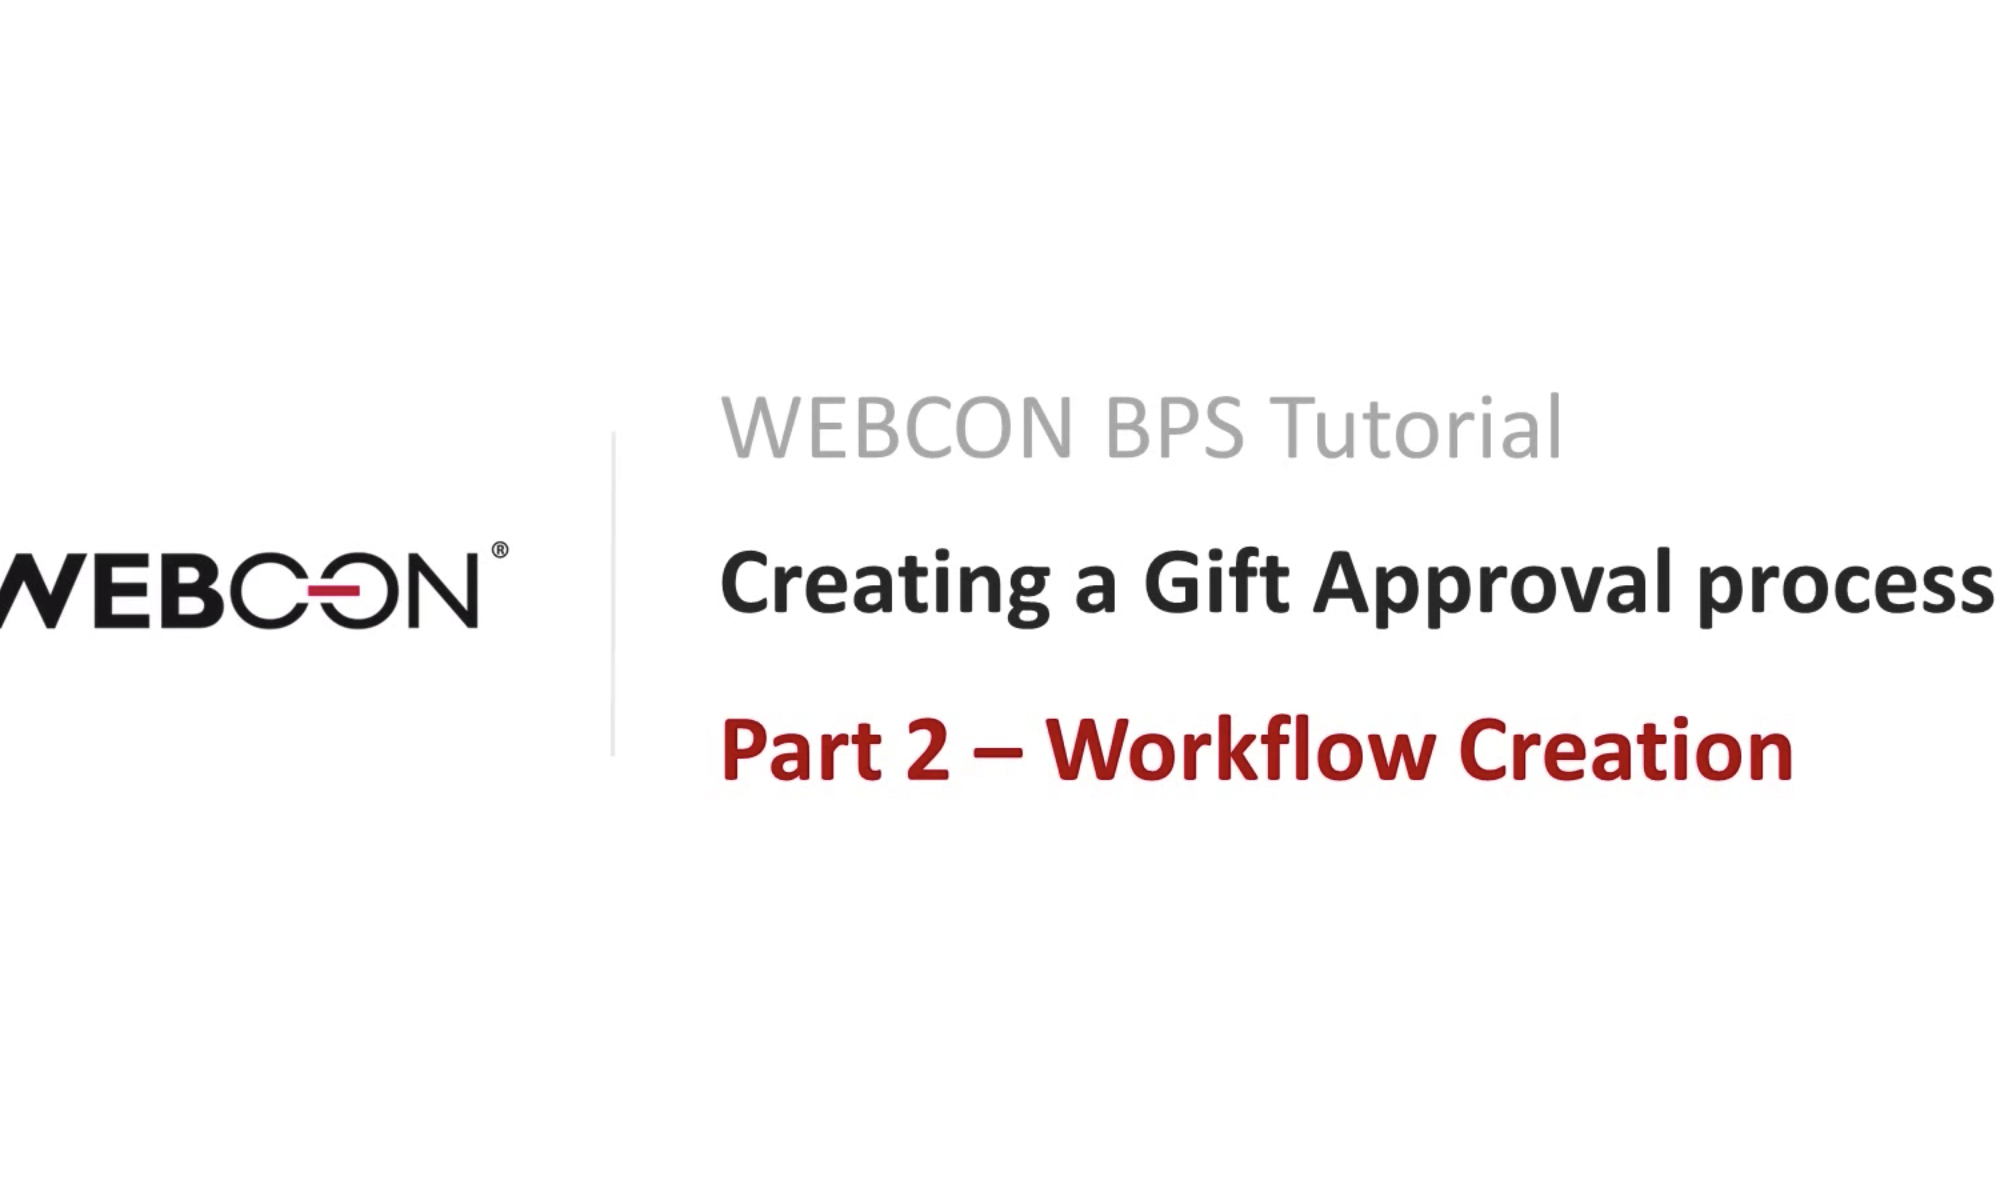 WEBCON BPS TUTORIAL Part 2